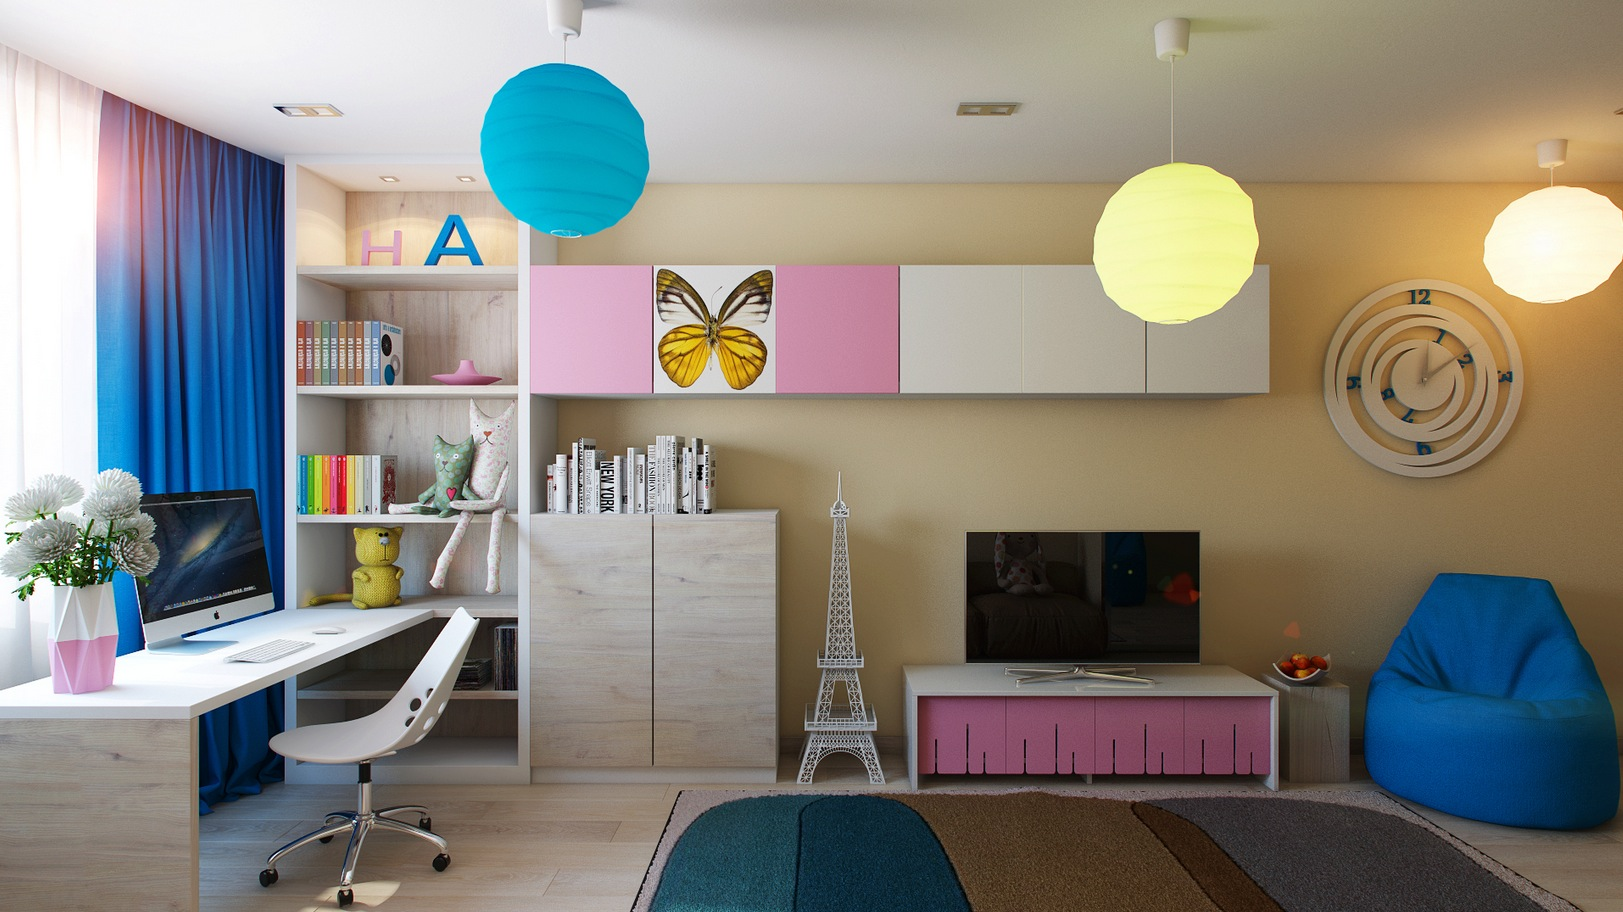 casting color over kids rooms. Black Bedroom Furniture Sets. Home Design Ideas